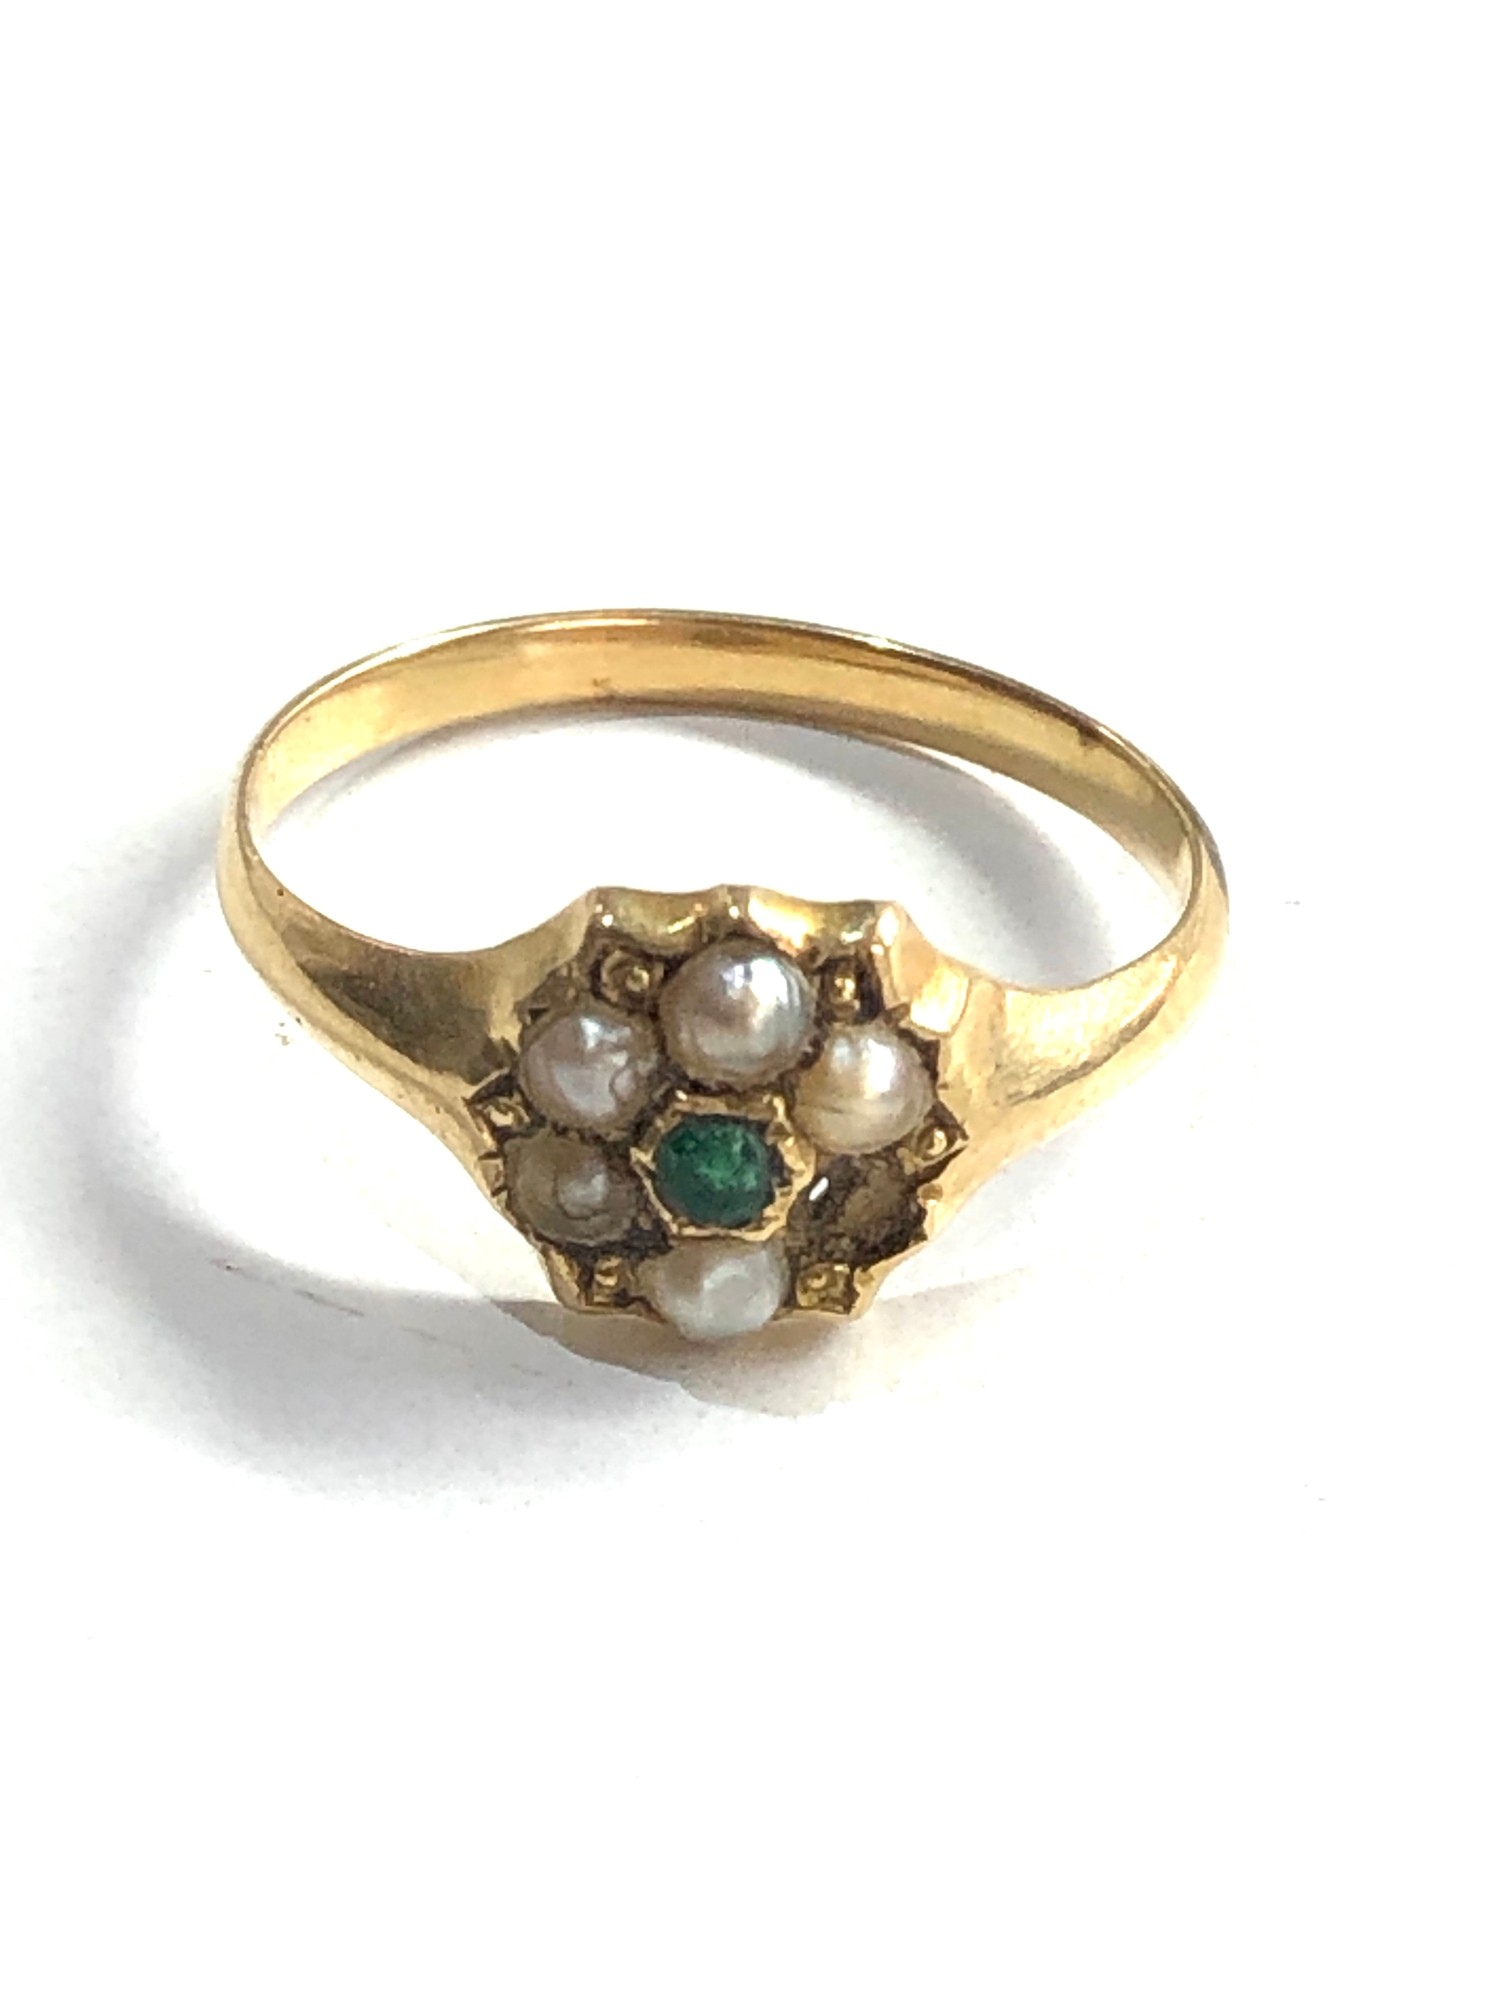 Antique 15ct gold emerald and seed-pearl ring missing pearl weight 2g xrt as 15ct gold